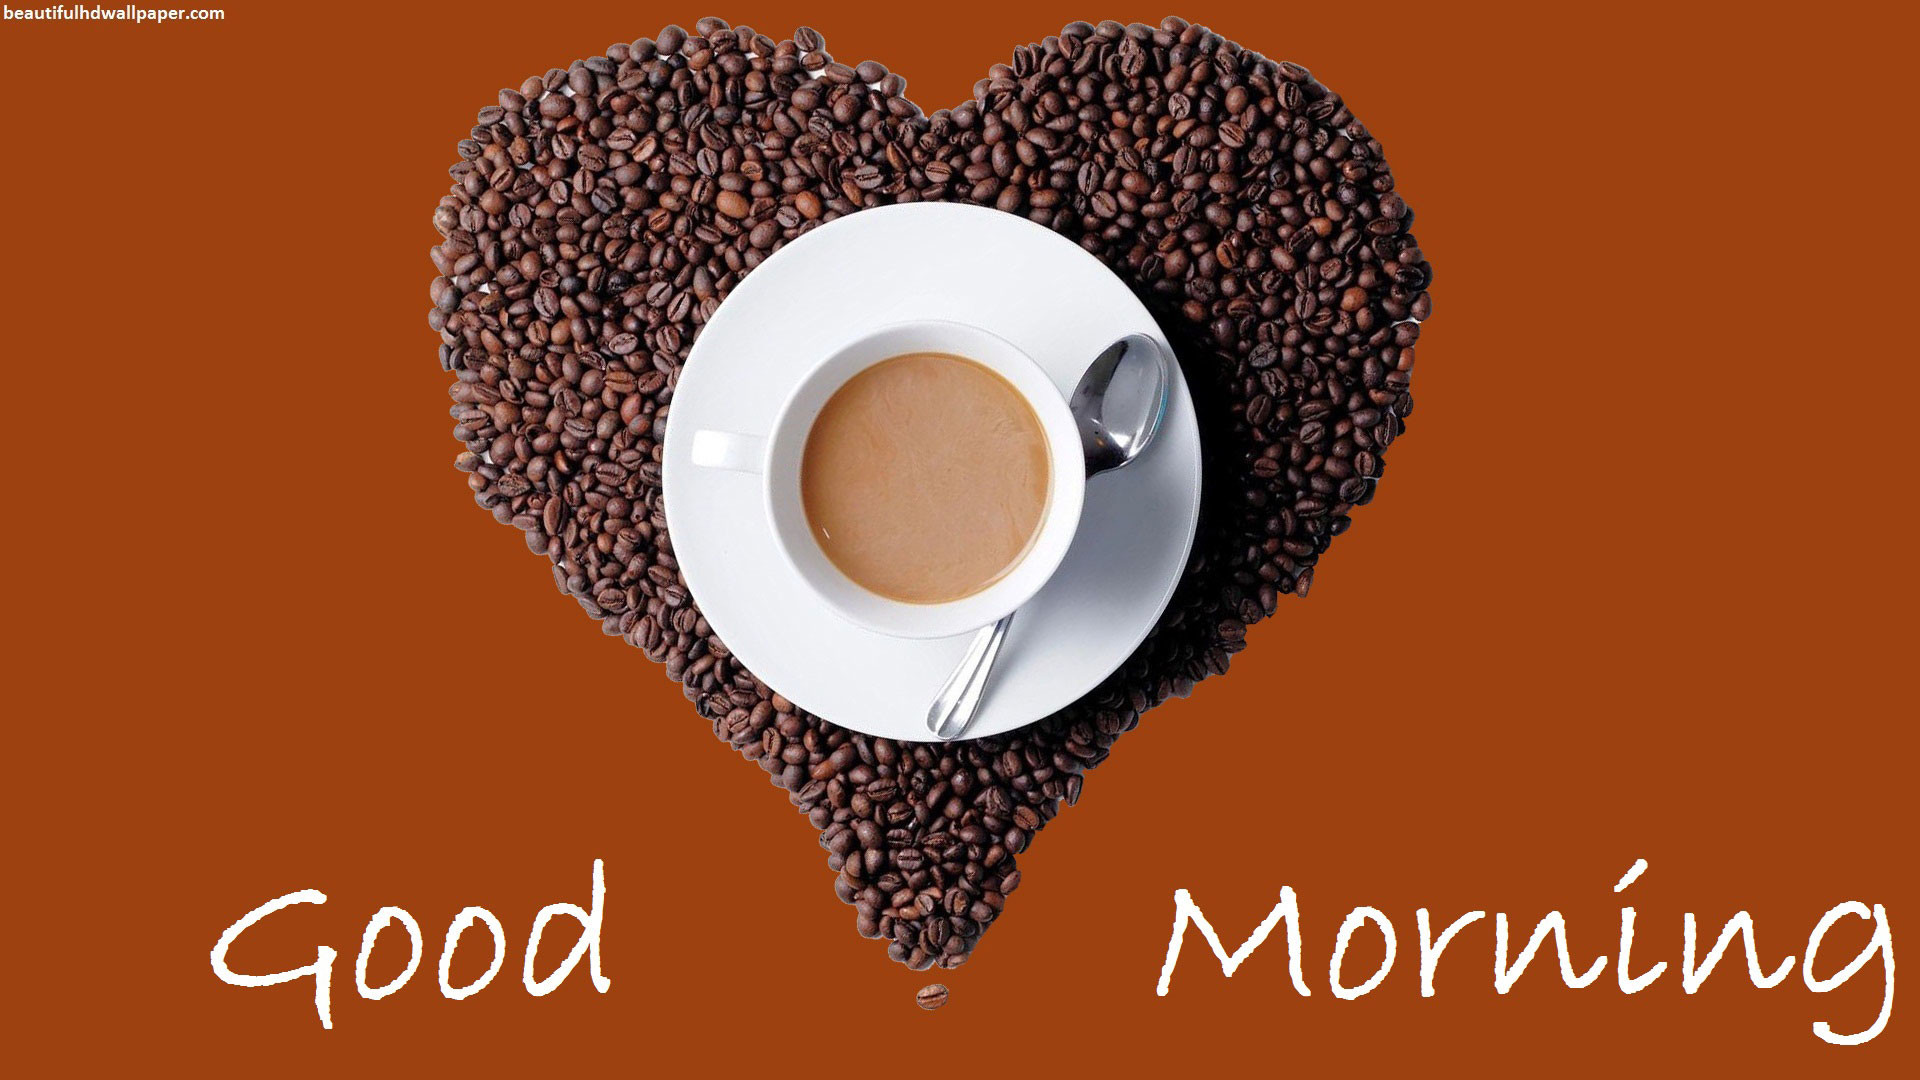 Hd Pics Photos Attractive Good Morning Coffee Seed - Good Morning Pictures Hd Quality - HD Wallpaper